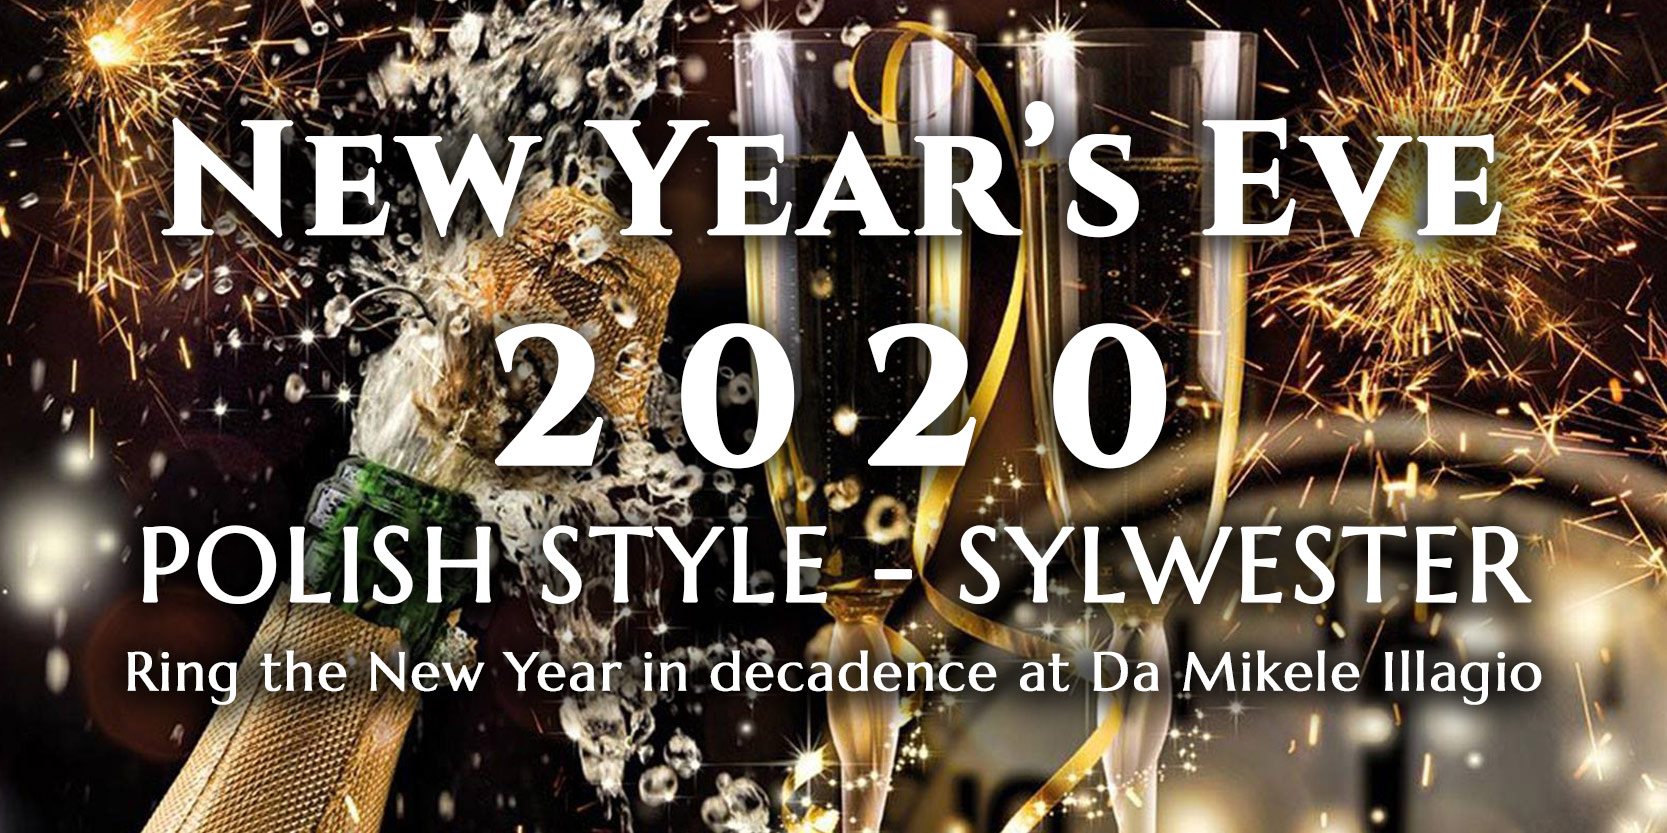 New Year's Eve 2020 - Sylwester 2020